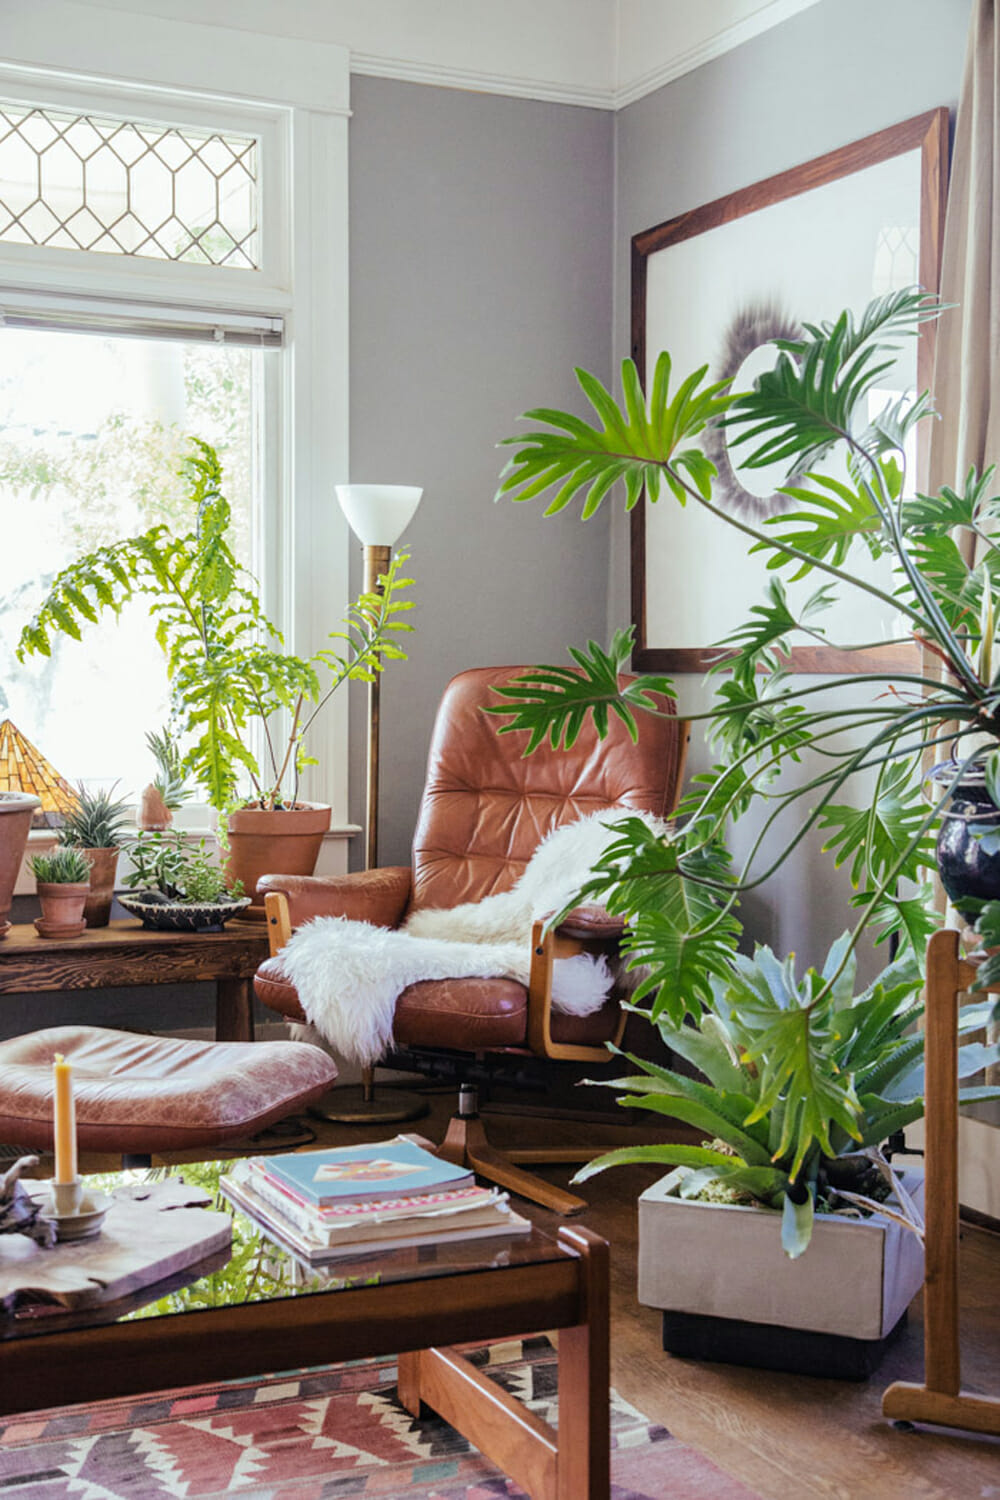 Decorating With Plants 11